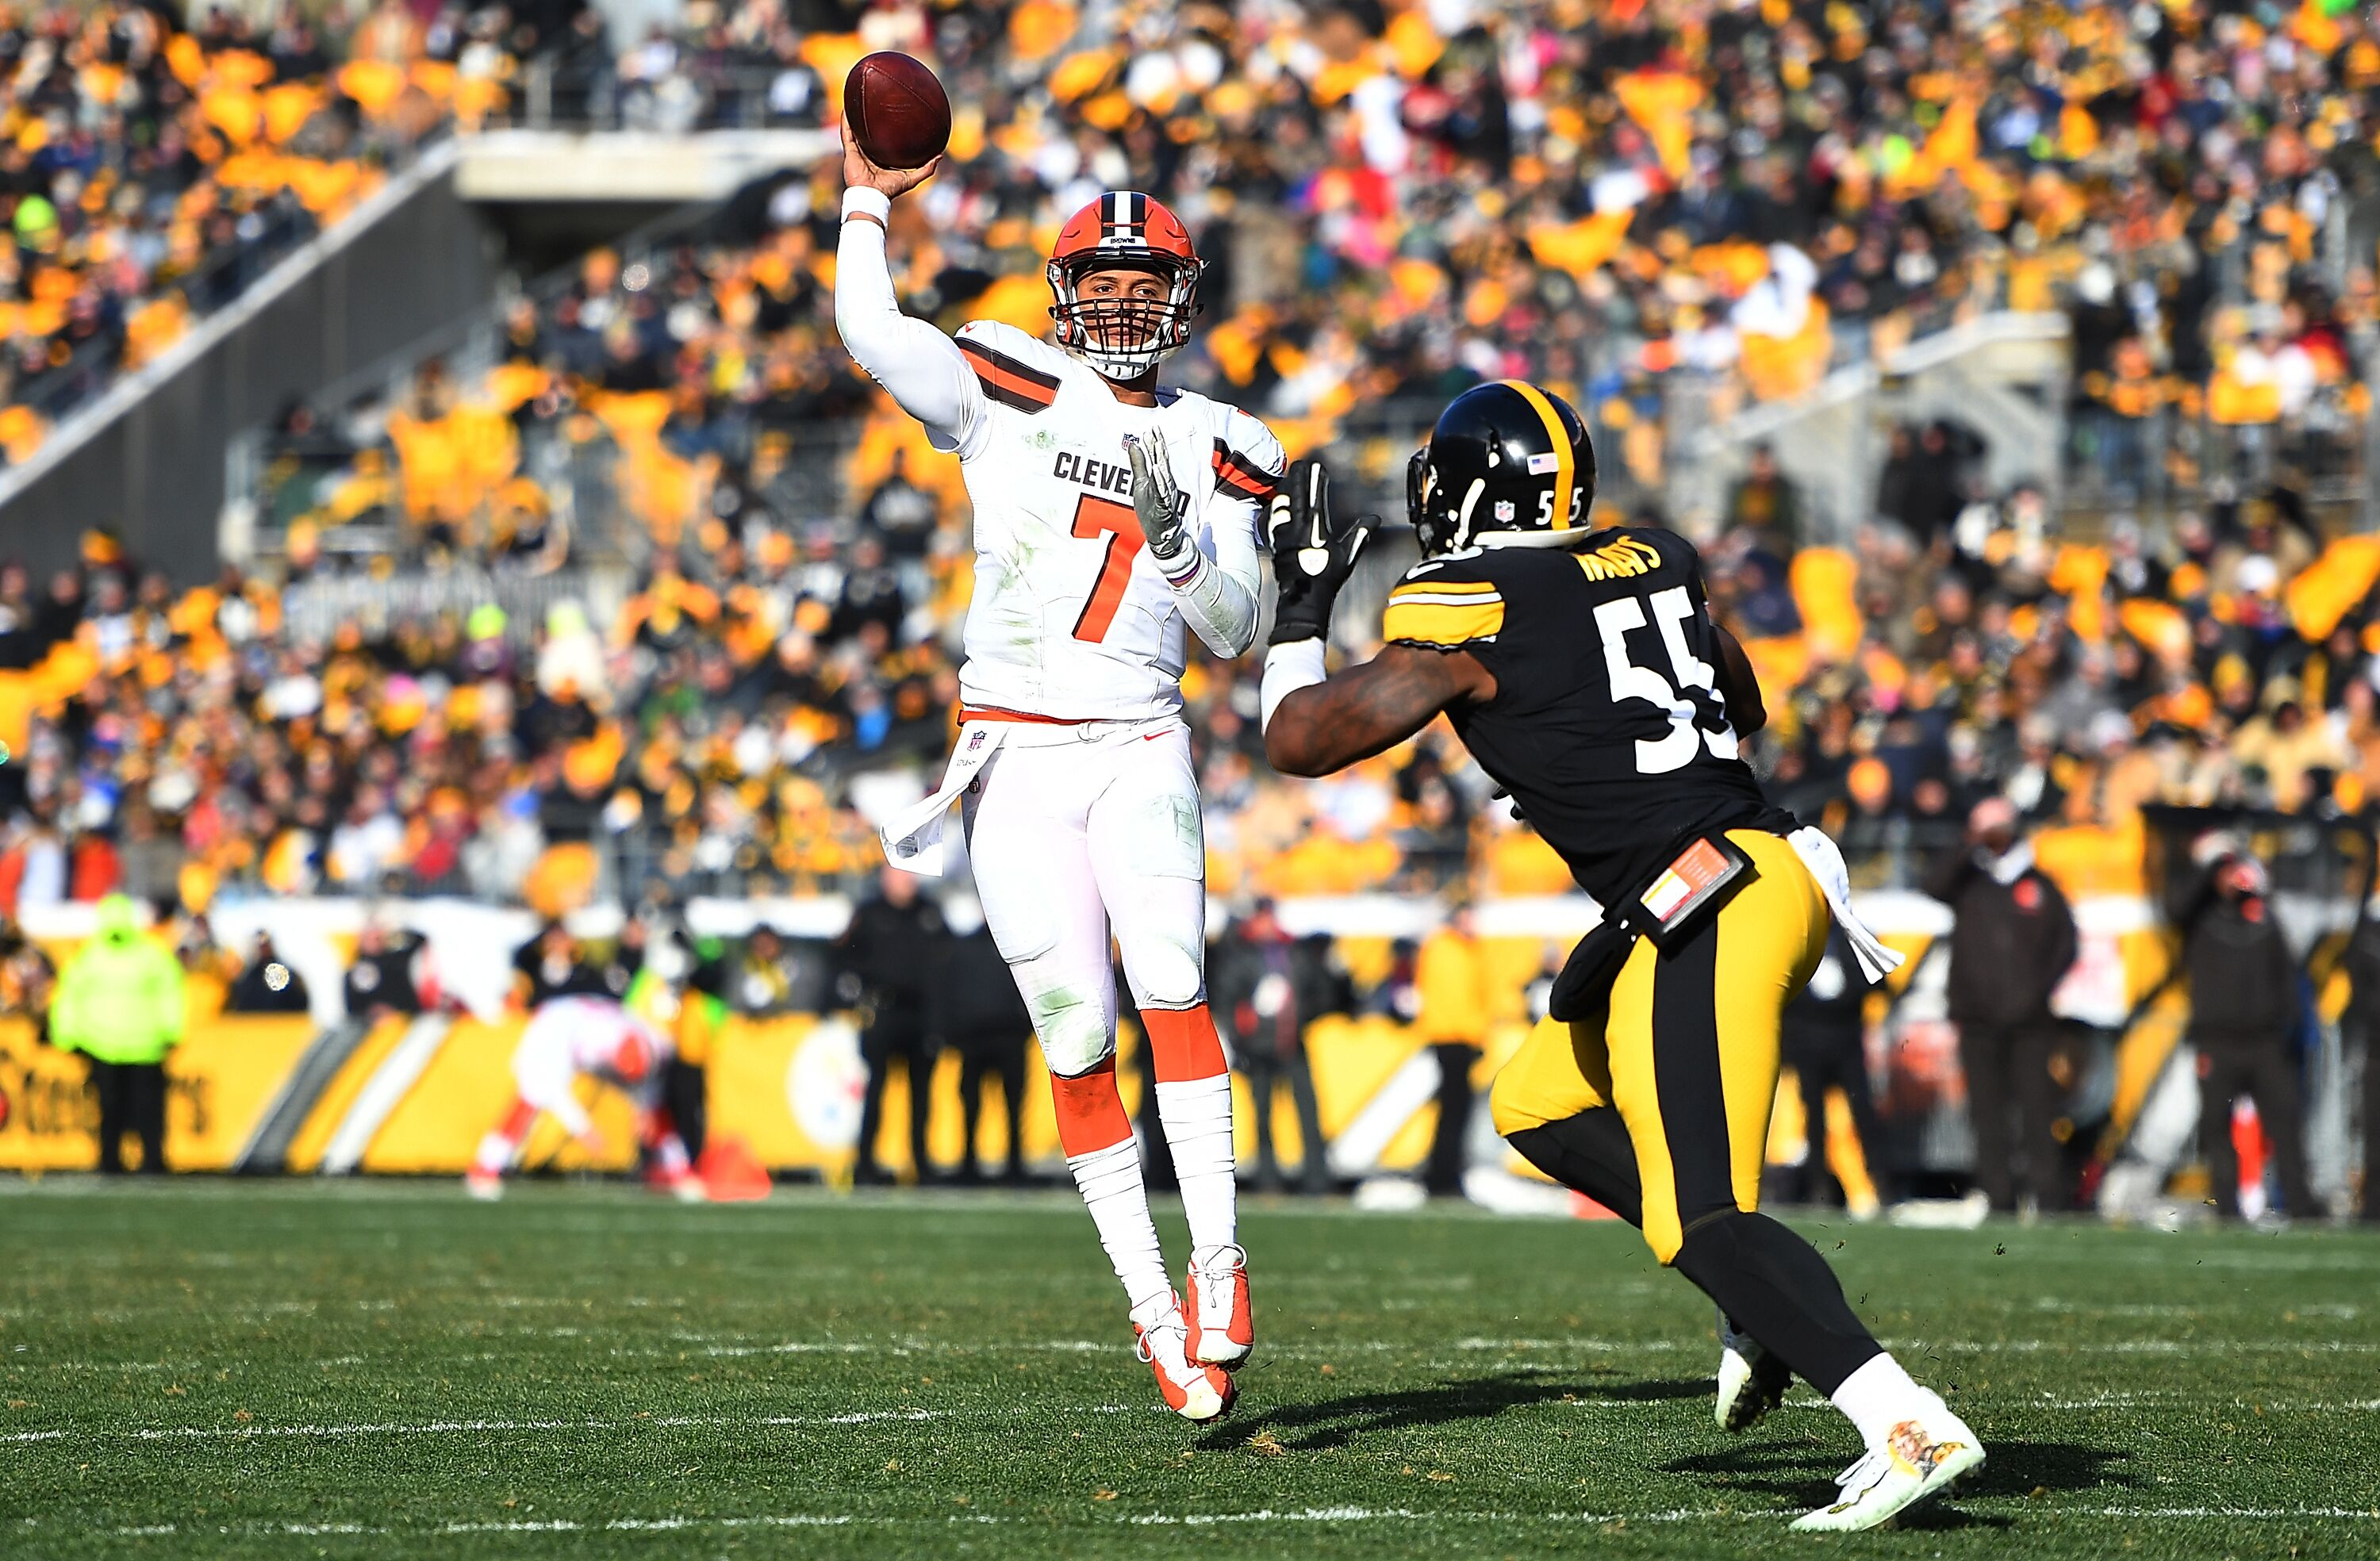 900098572-cleveland-browns-v-pittsburgh-steelers.jpg